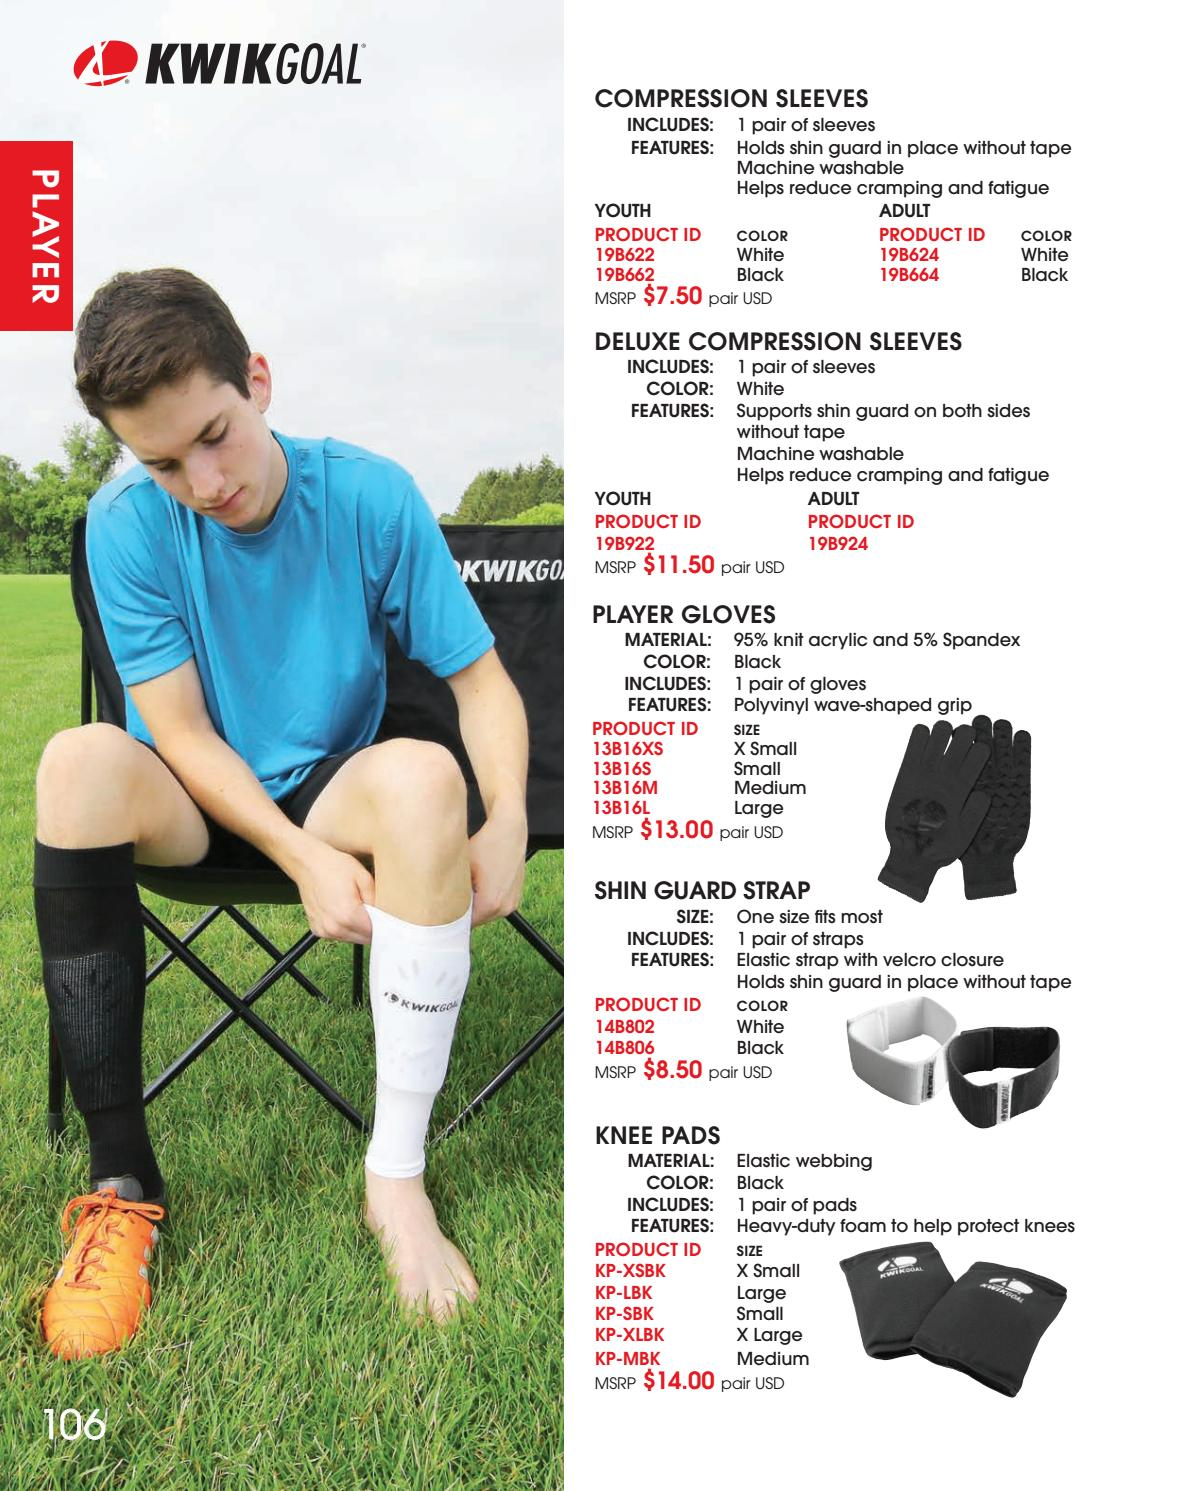 d9139f1b6 Kwik Goal Deluxe Compression Sleeves Team Sports Sports & Outdoors